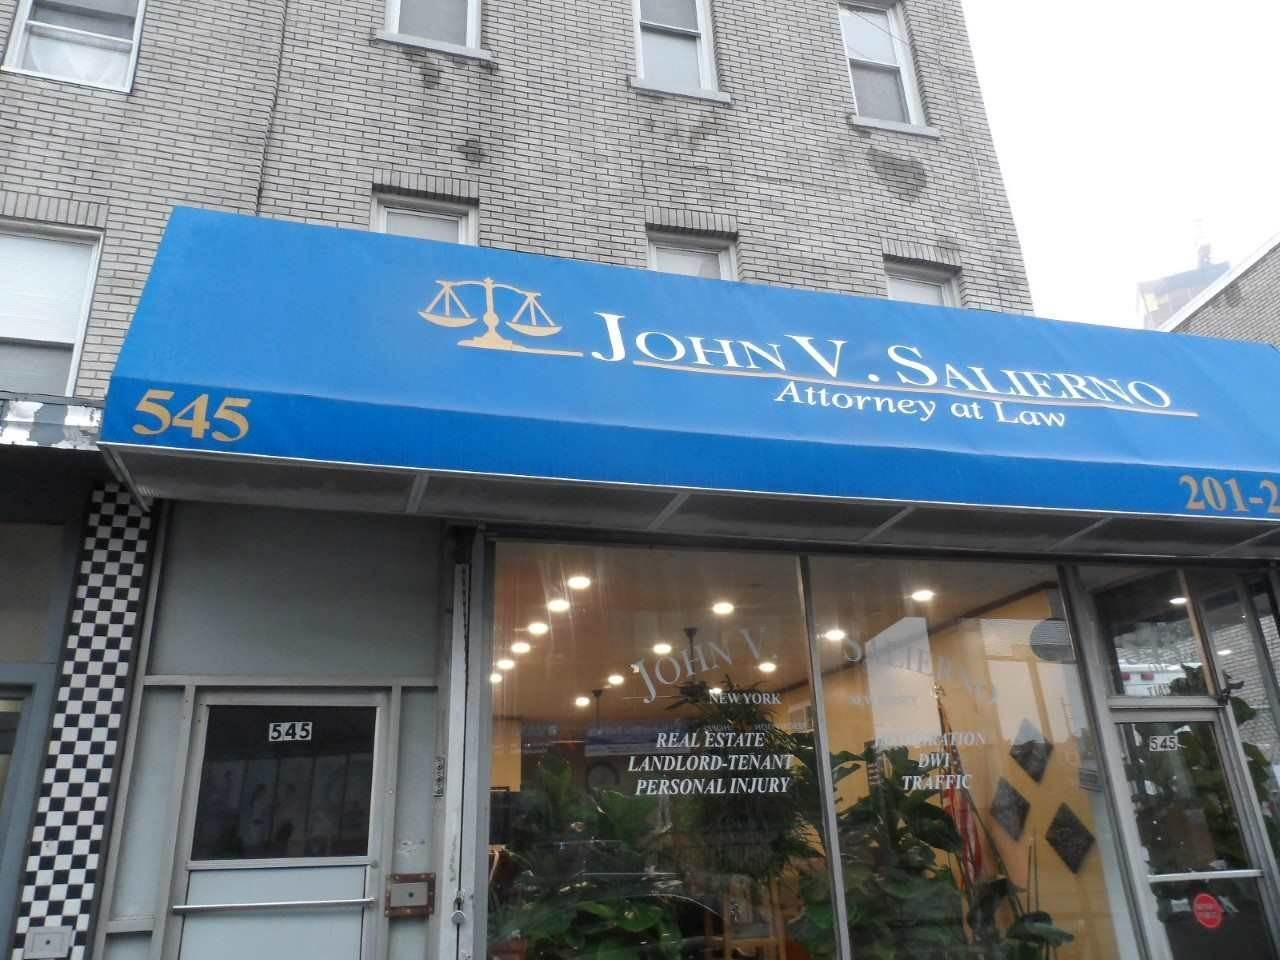 Single Family Home for Rent at 545 NEWARK AVENUE Jersey City, New Jersey, 07306 United States